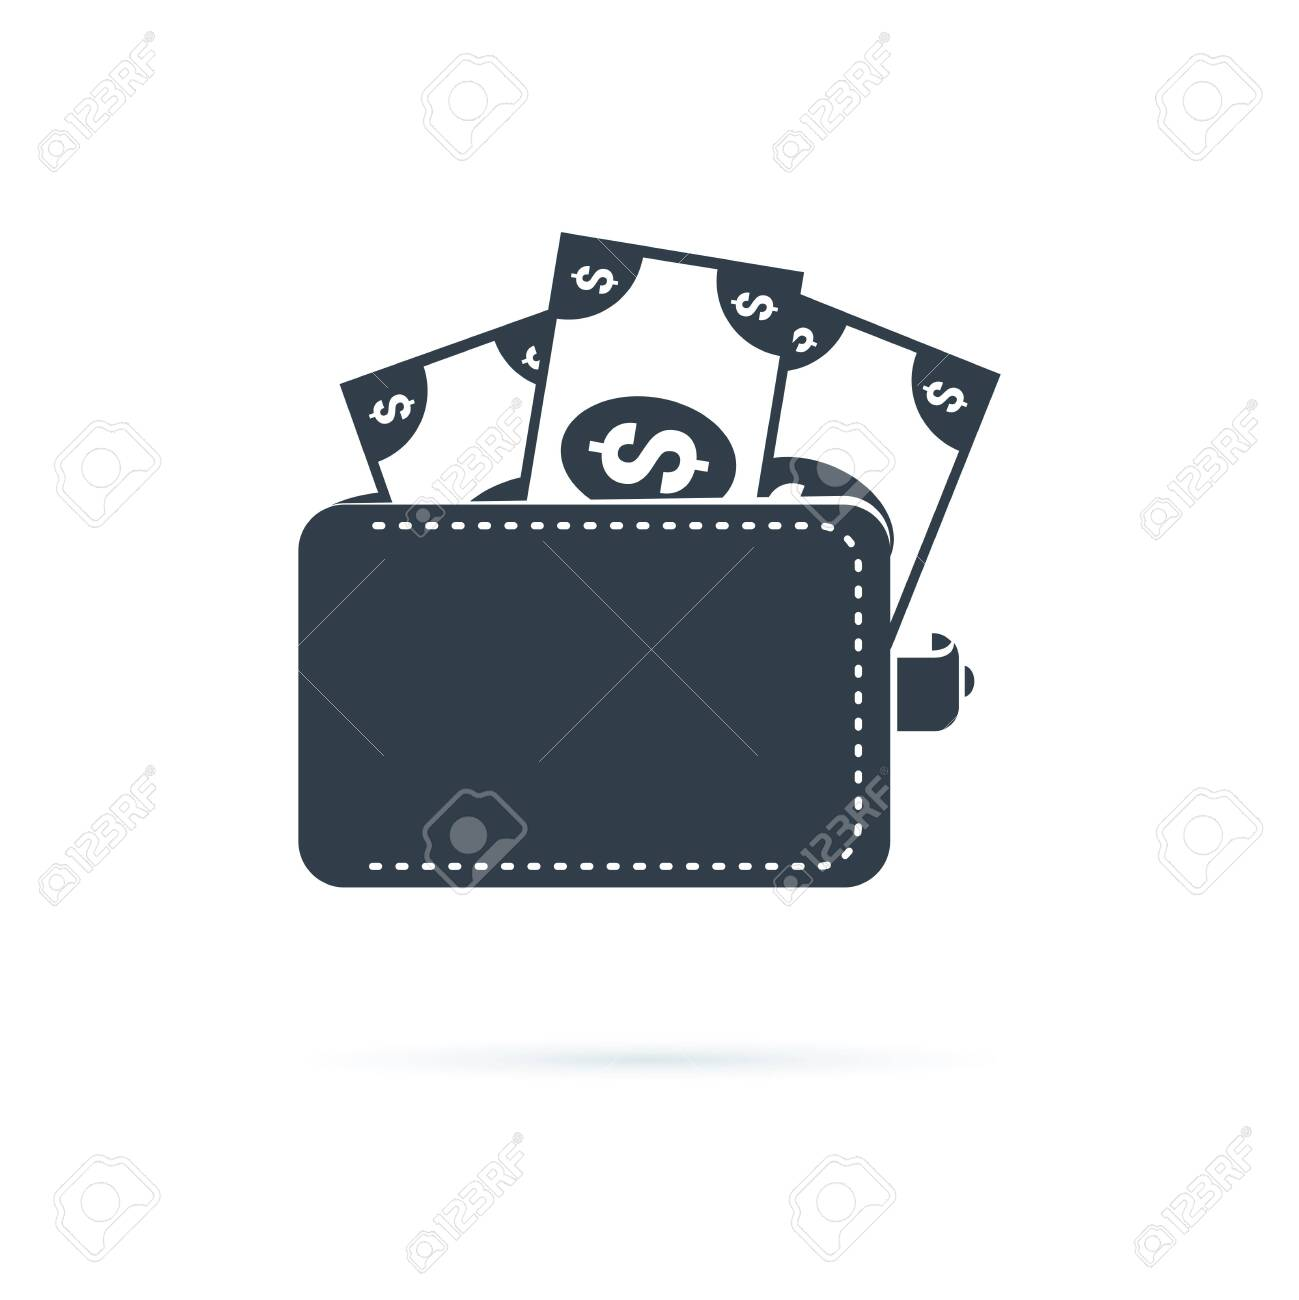 Wallet icon. Affordability sign. Cash savings symbol. Quality design element. Classic style icon. Vector solid icons for website, infographic or app. Financial symbol with money, currency, dollars. - 123299673